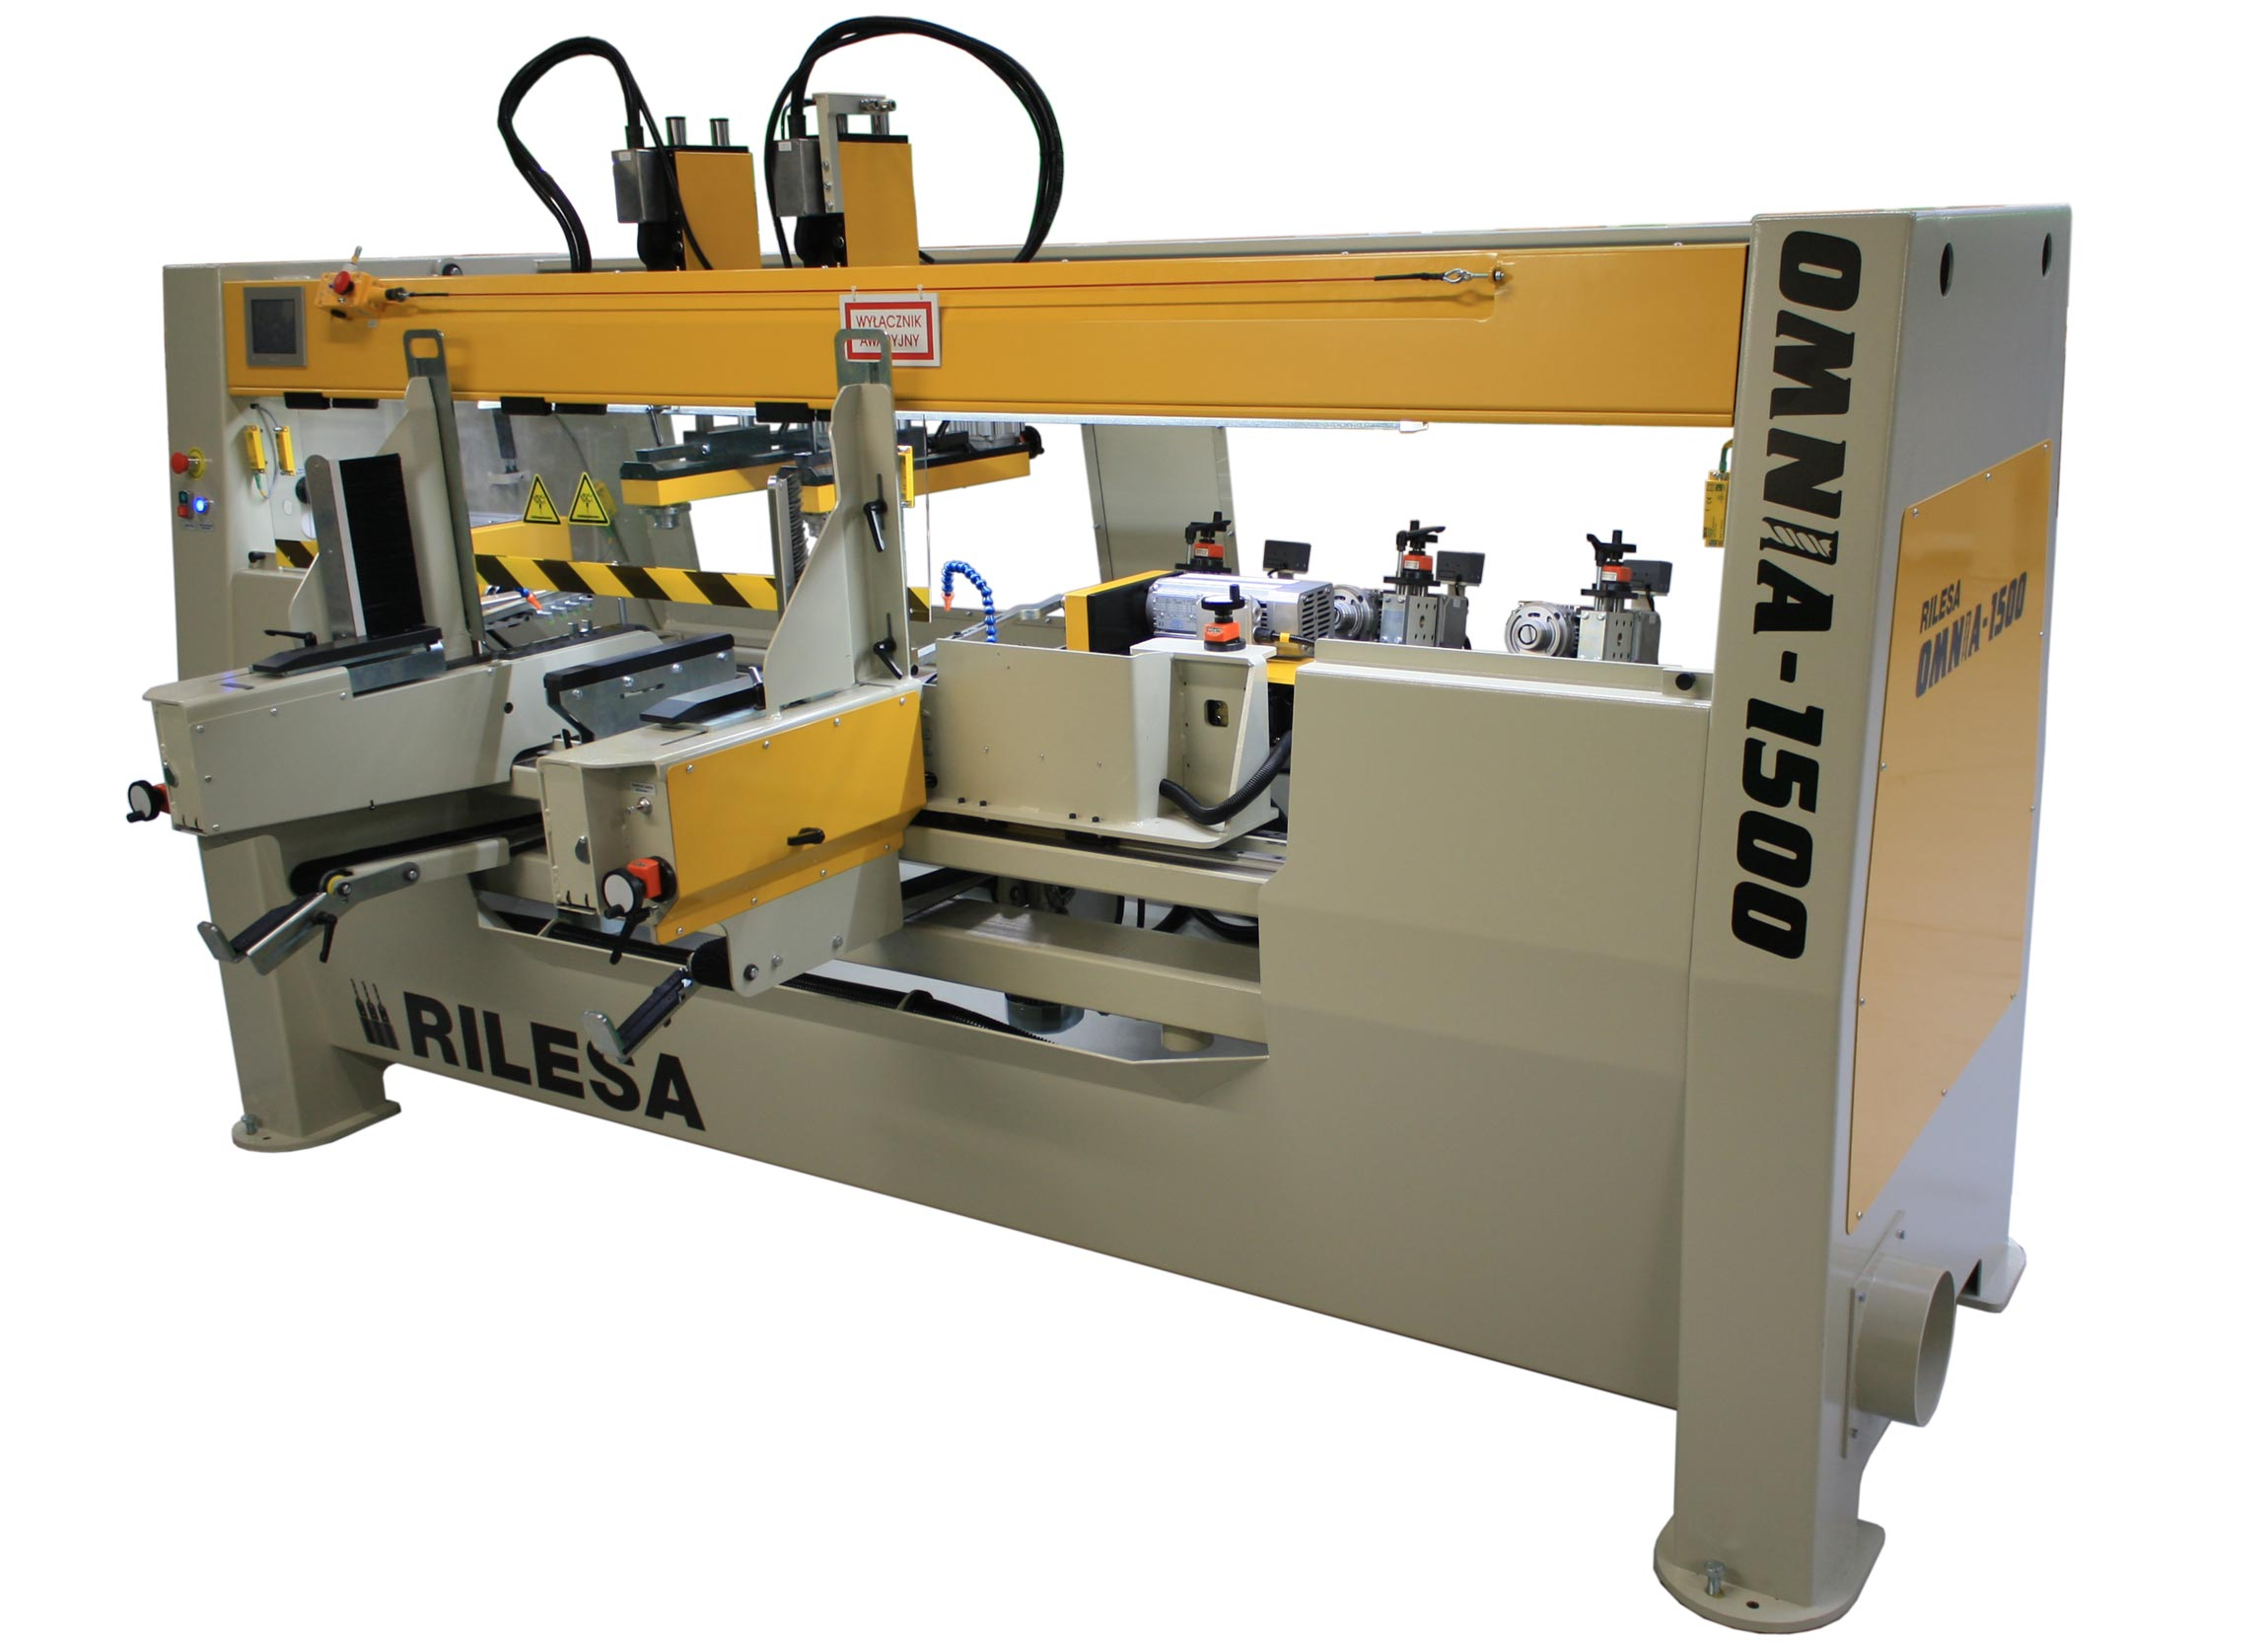 Woodworking Machinery Dowel Drilling Milling Boring And Cutting